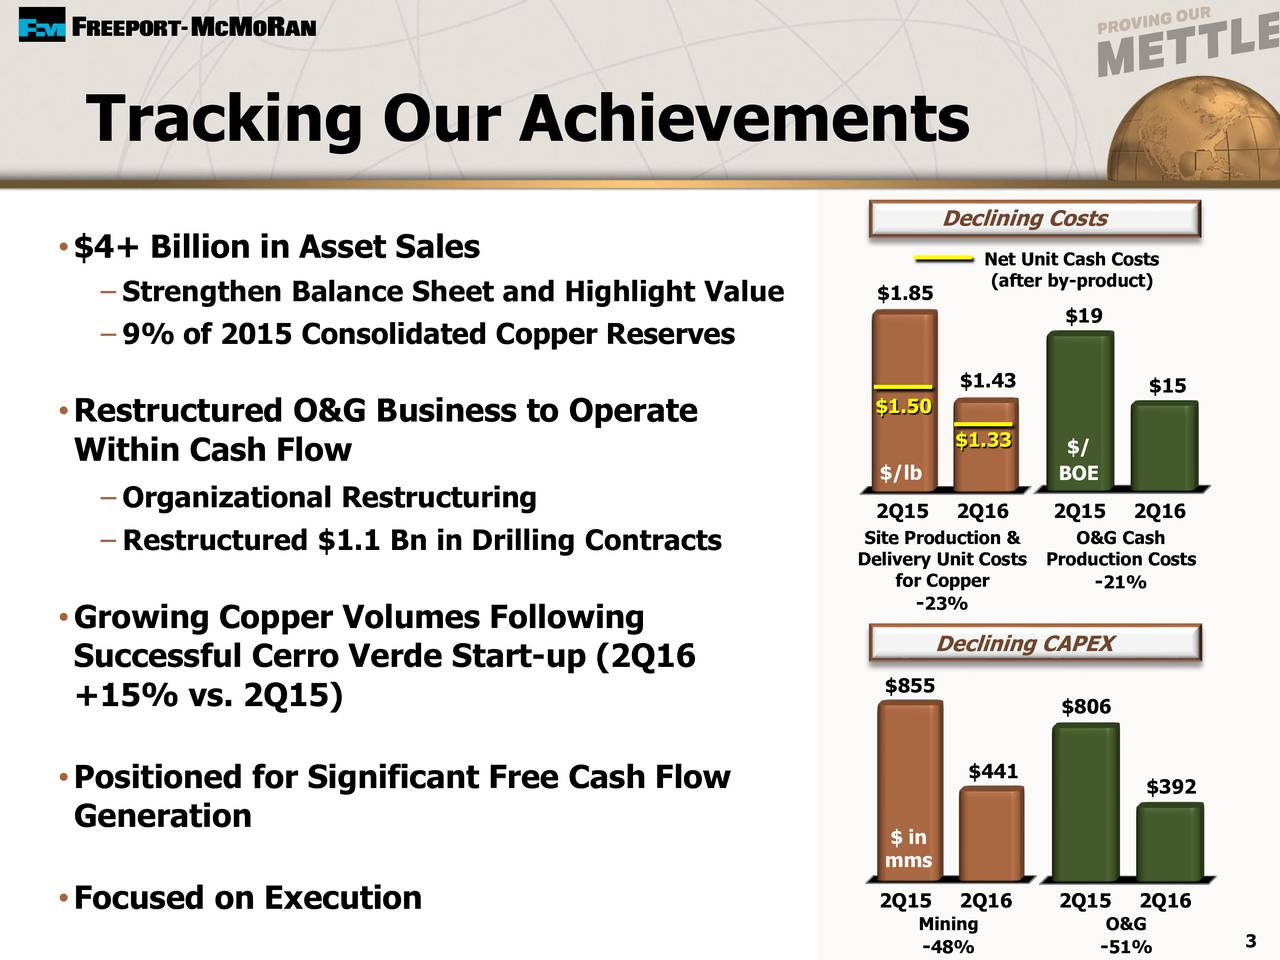 Declining Costs $4+ Billion in Asset Sales Net Unit Cash Costs Strengthen Balance Sheet and Highlight Value $1.85 (after by-product) $19 9% of 2015 Consolidated Copper Reserves $1.43 $15 Restructured O&G Business to Operate $1.50 $1.33 $/ Within Cash Flow $/lb BOE Organizational Restructuring 2Q15 2Q16 2Q15 2Q16 Site Production O&G Cash Restructured $1.1 Bn in Drilling Contracts Delivery Unit CProduction Costs for Copper 21% 23% Growing Copper Volumes Following Declining CAPEX Successful Cerro Verde Start-up (2Q16 $855 +15% vs. 2Q15) $806 Positioned for Significant Free Cash Flow $441 $392 Generation $ in mms Focused on Execution 2Q15 2Q16 2Q15 2Q16 Mining O&G 3